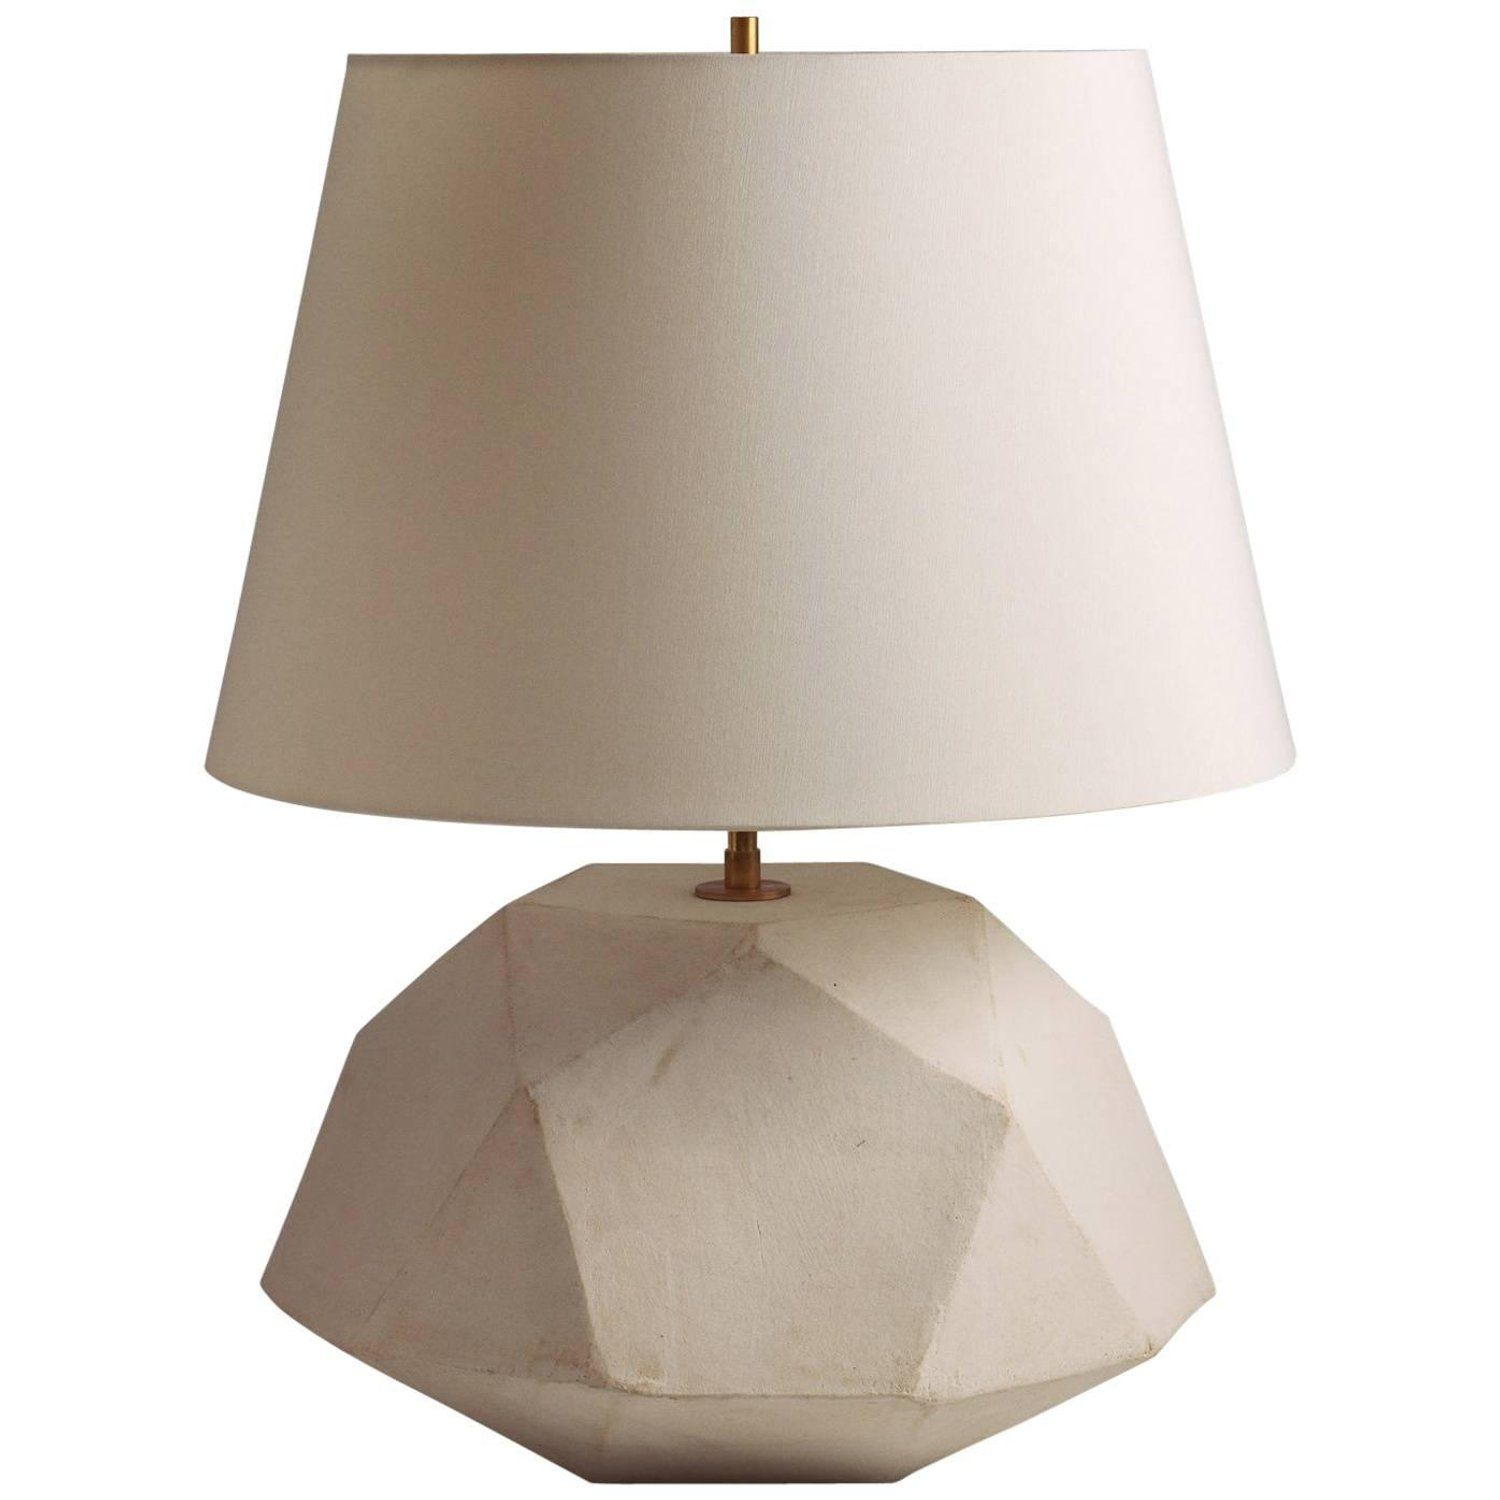 Nova Fleur Cream Burlap Textured White Ceramic Table Lamp Lamp Ceramic Table Lamps Beige Table Lamps